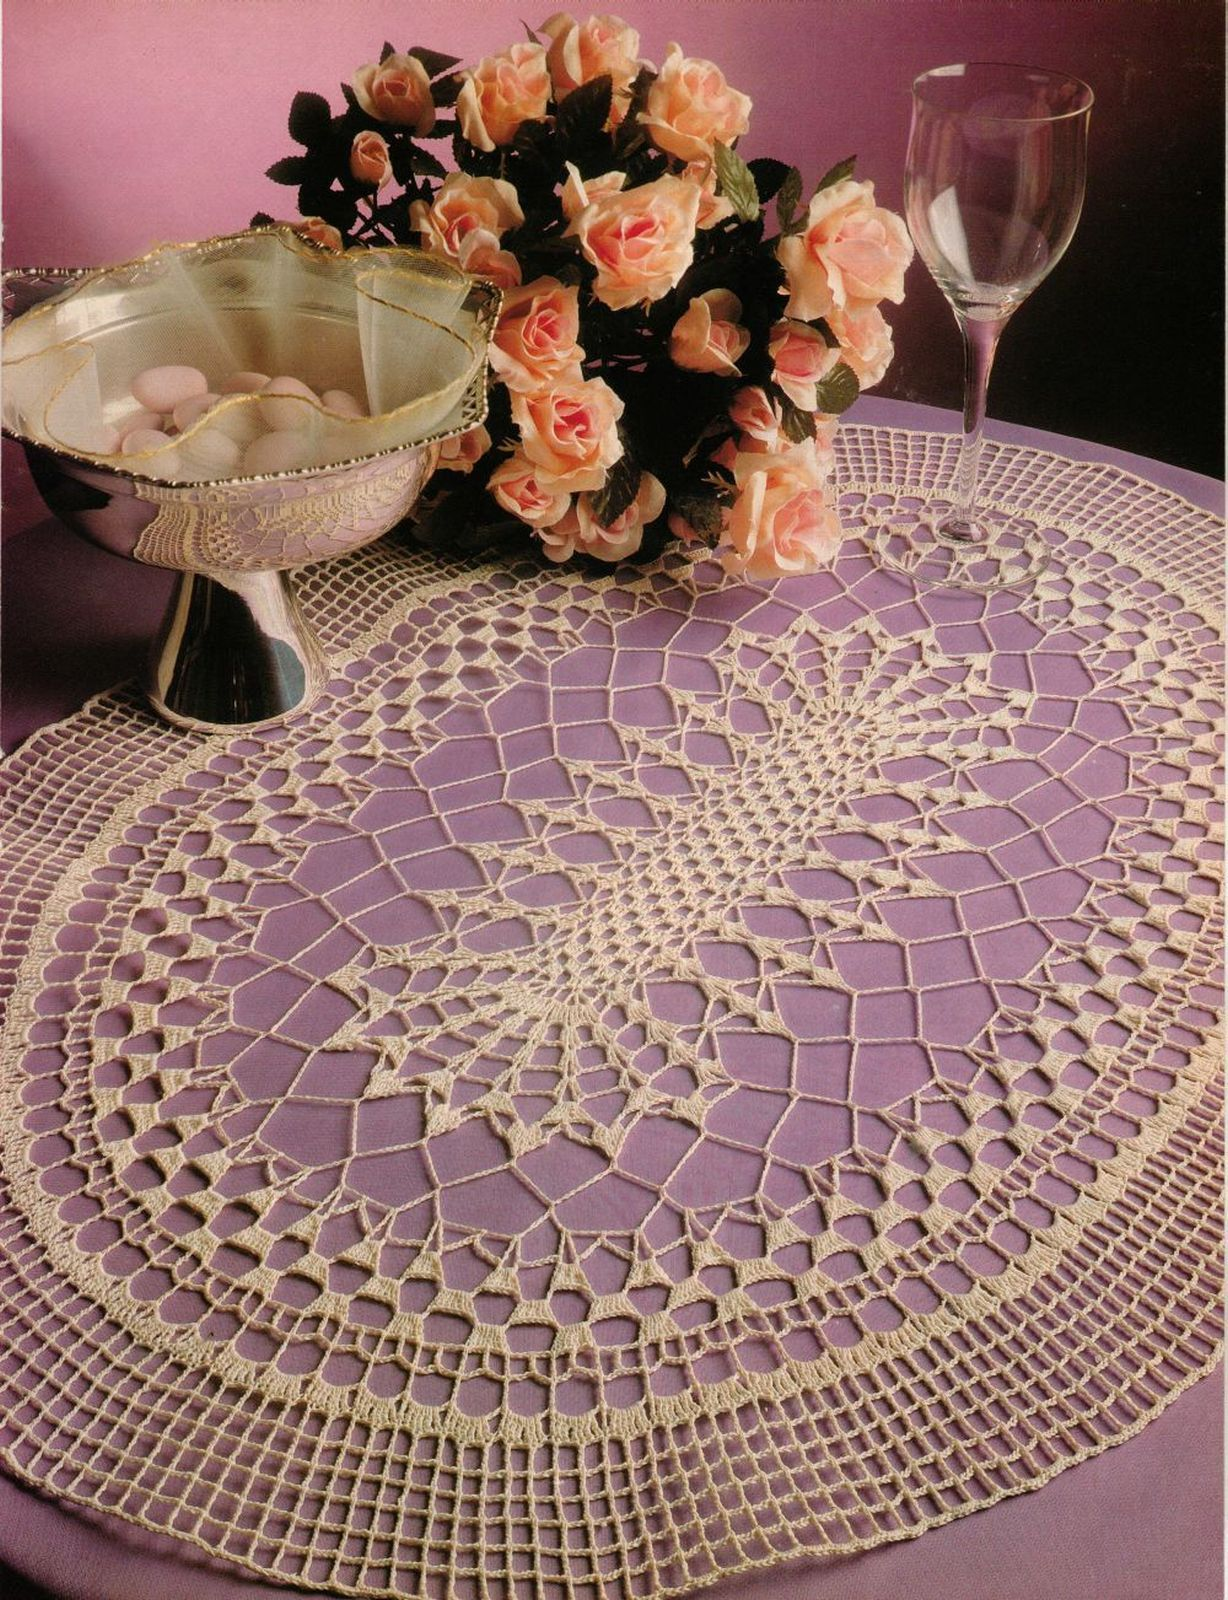 Primary image for Ovalissimo Oval Table Top Mat Winsome Scrolls Golden Palms Doily Crochet Pattern